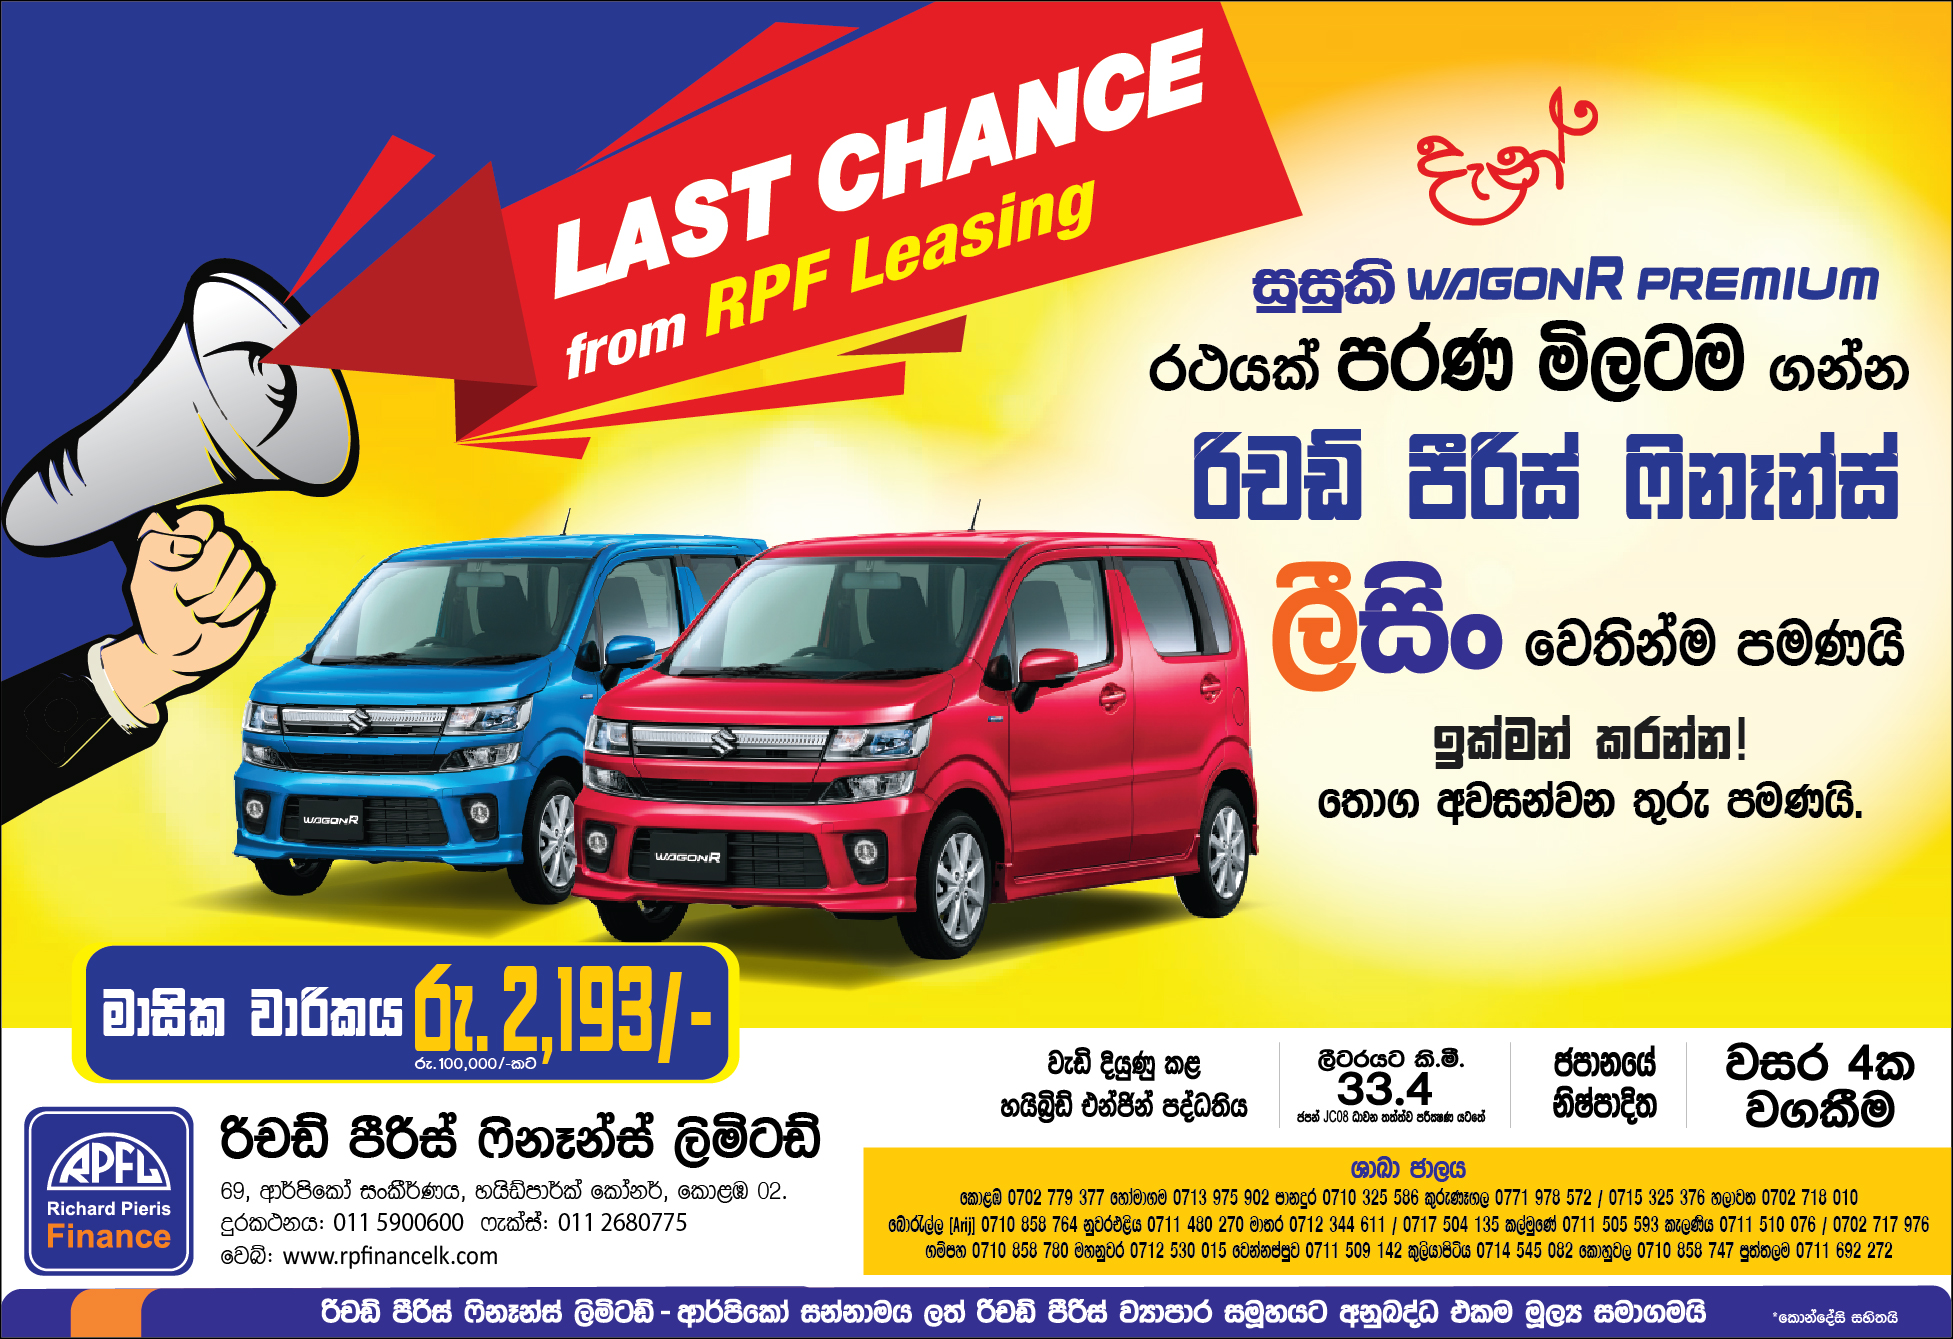 Last Chance From RPF Leasing